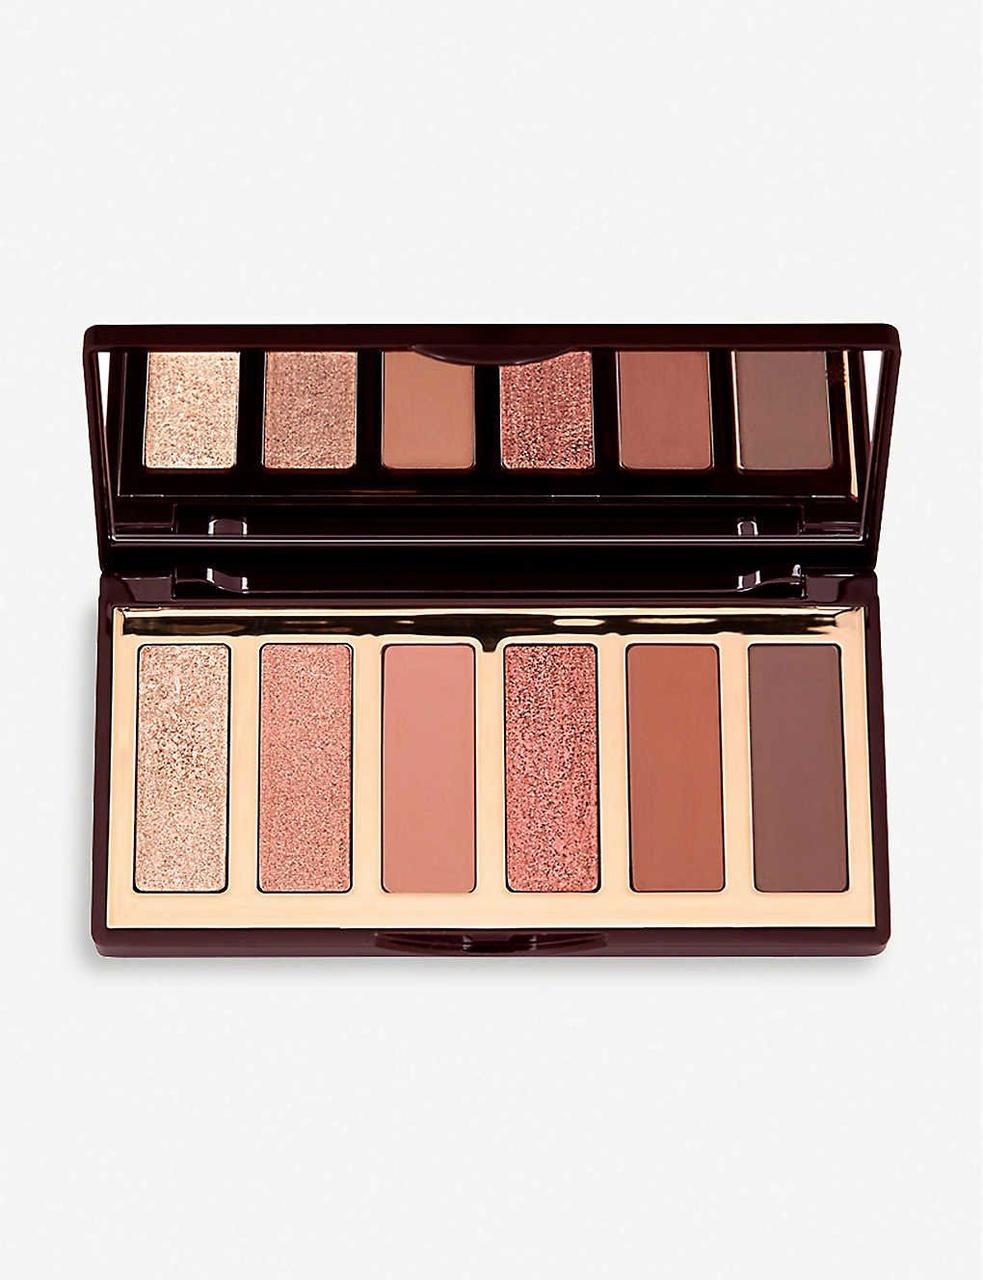 Палетка теней для век Charlotte Tilbury Easy Eye Palette  Darling